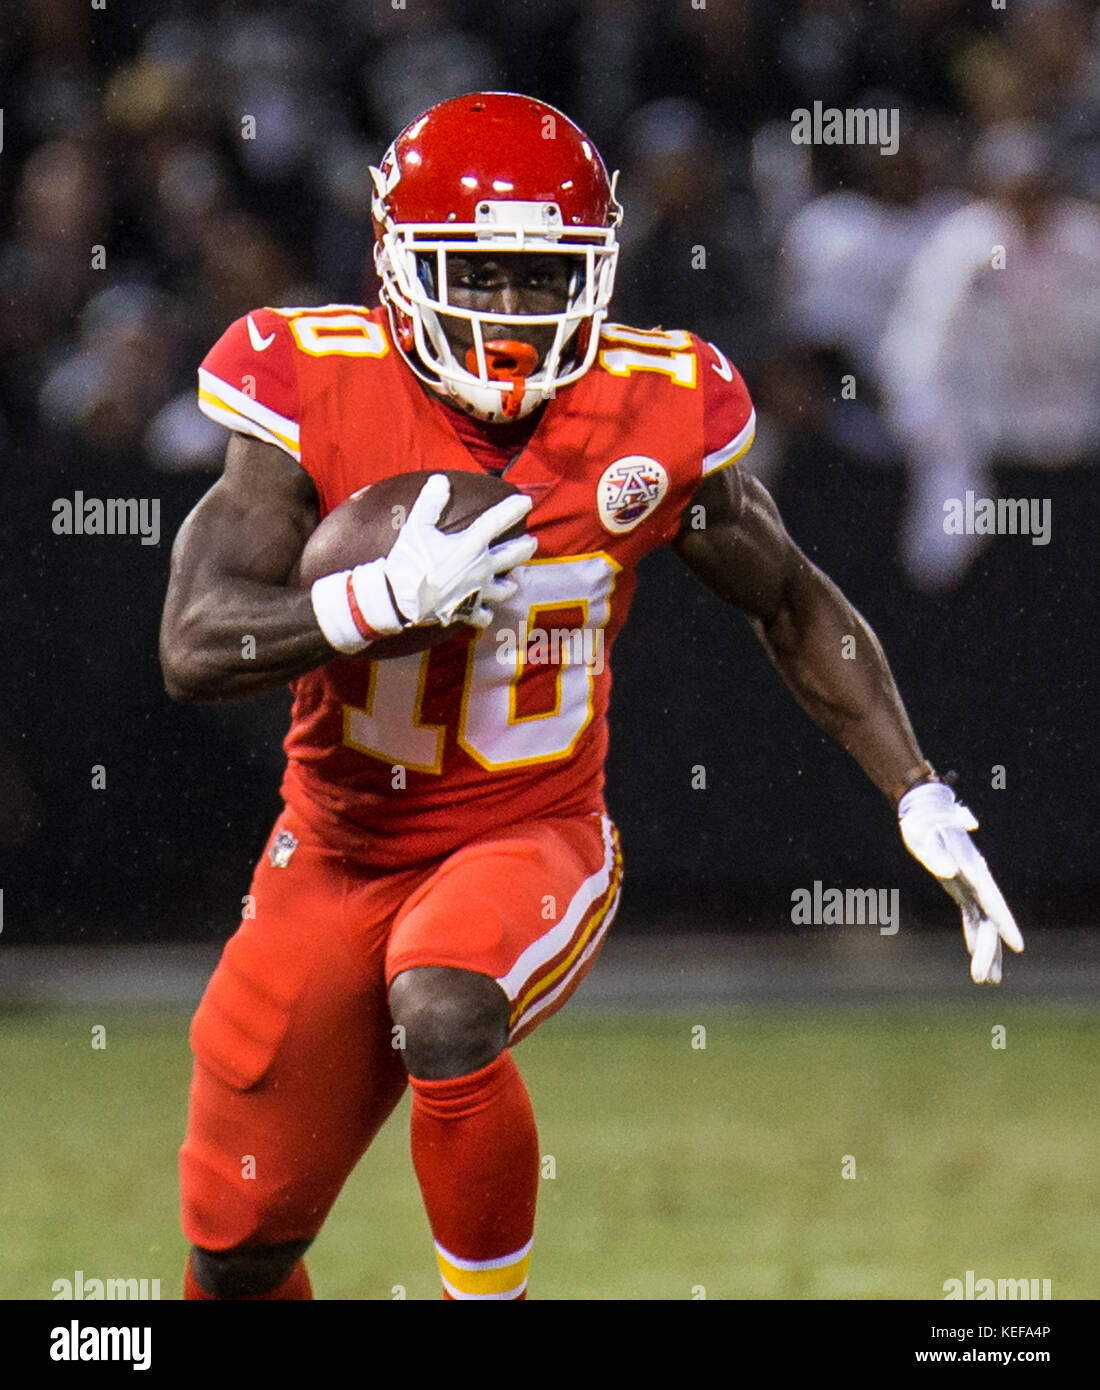 Oct 19 2017 - Oakland CA, U.S.A Chiefs wide receiver Tyreek Hill (10) game stats 6 catches for 125 yards and 1 touchdown Stock Photo